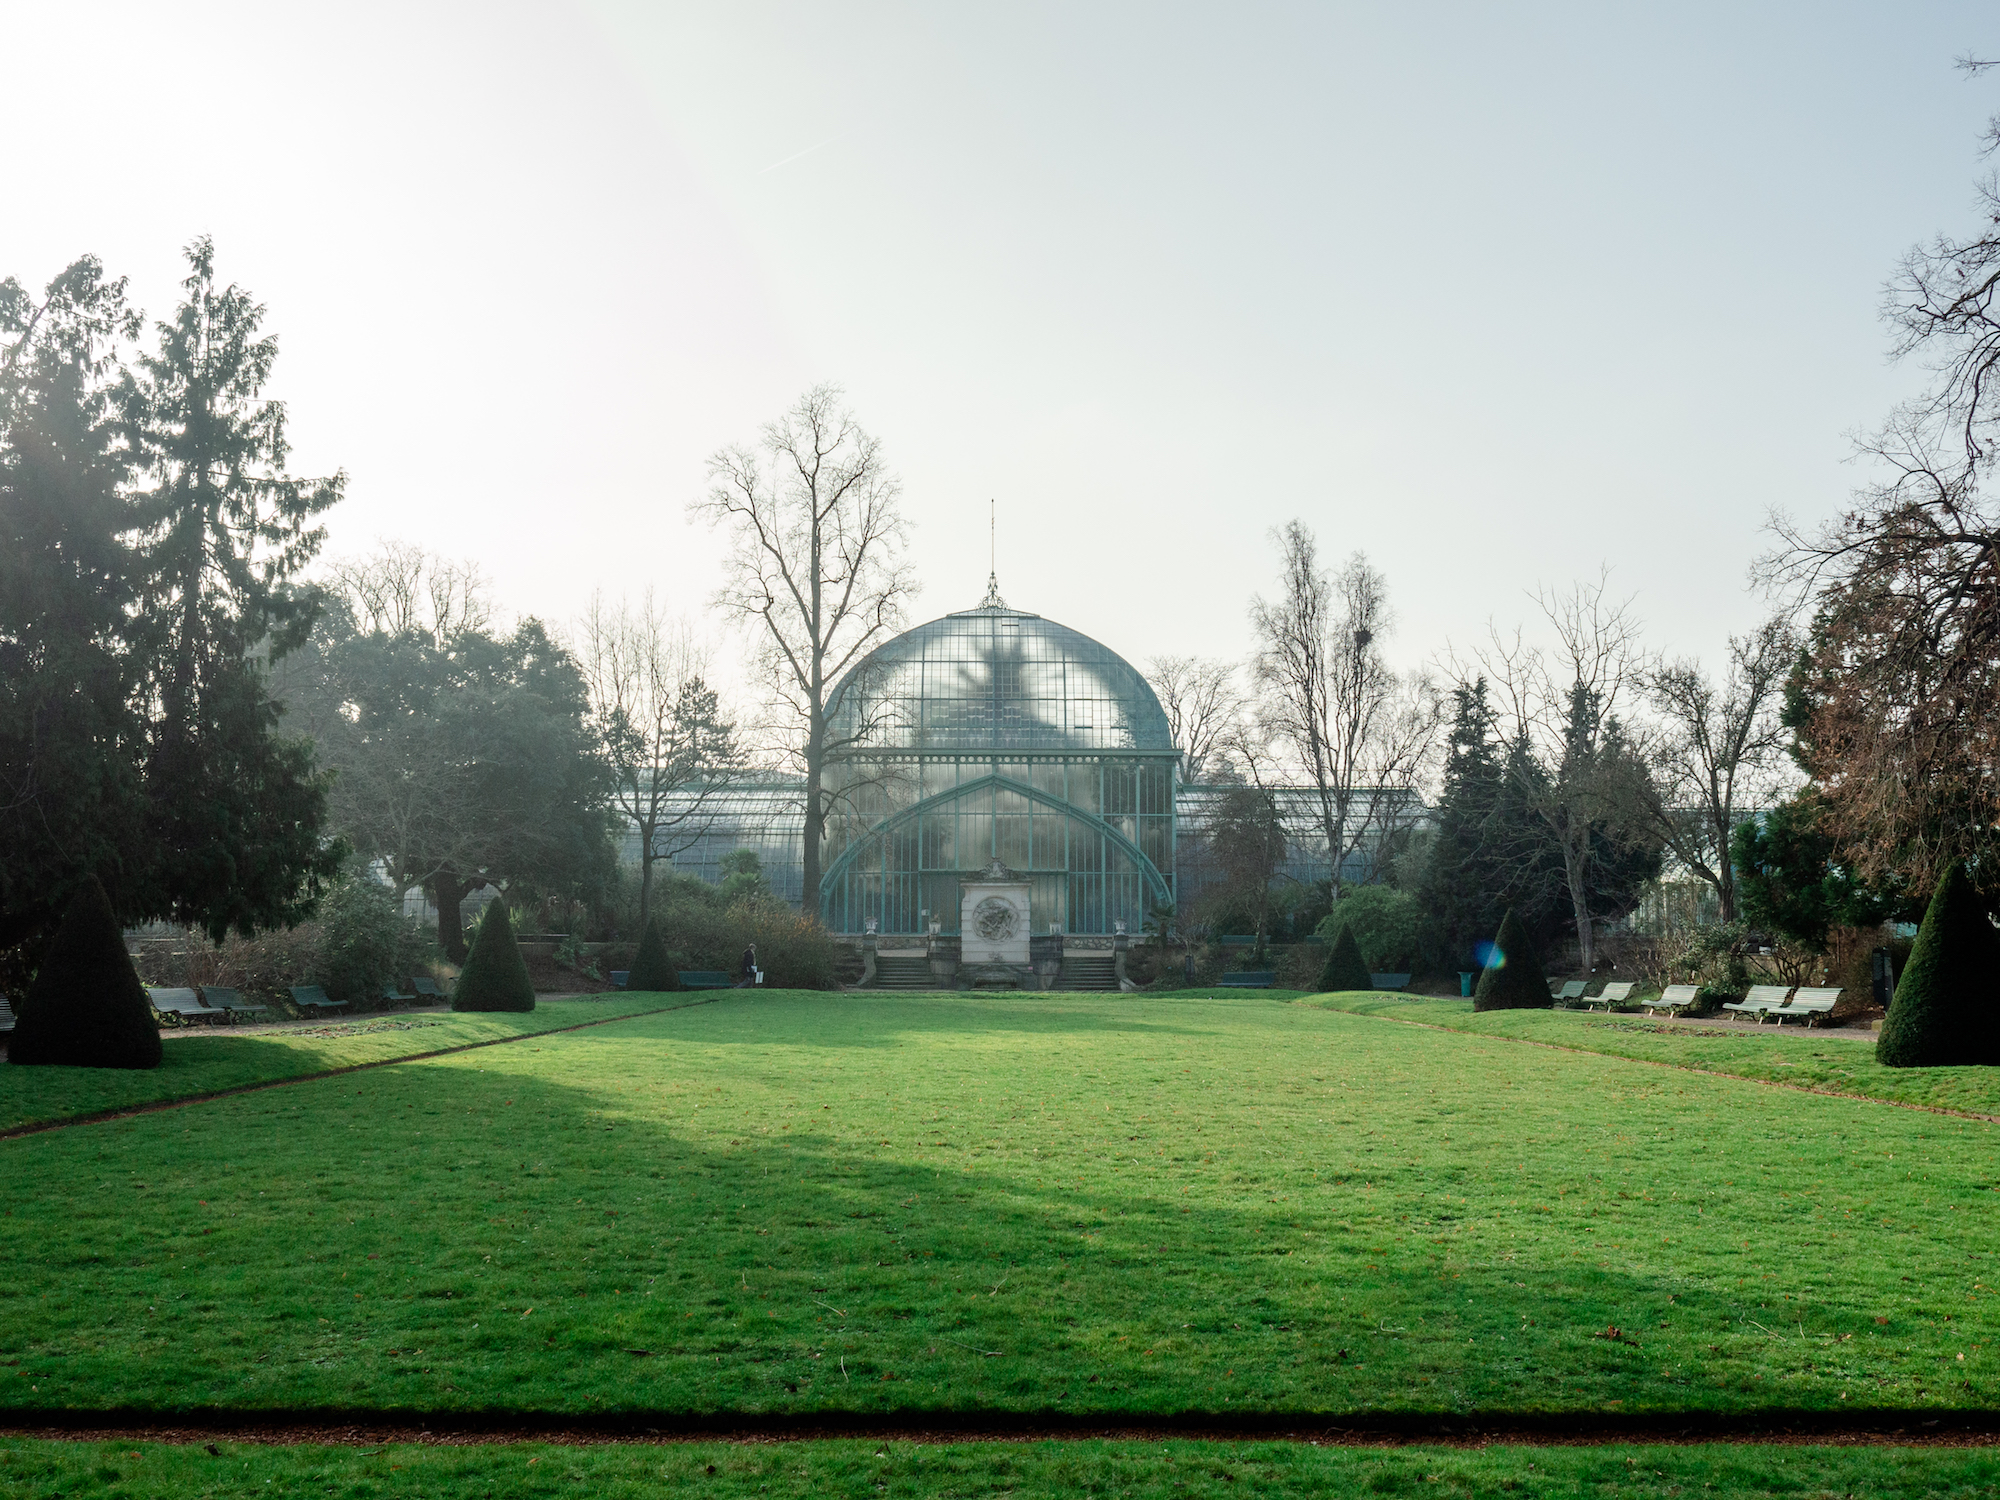 The greenhouse, called the Serres d'Auteuil, in Paris' 16th arrondissement, is illuminated by the sunrise. Sunlight streams through the pointed dome, spilling onto the lawn that leads to the entrance.